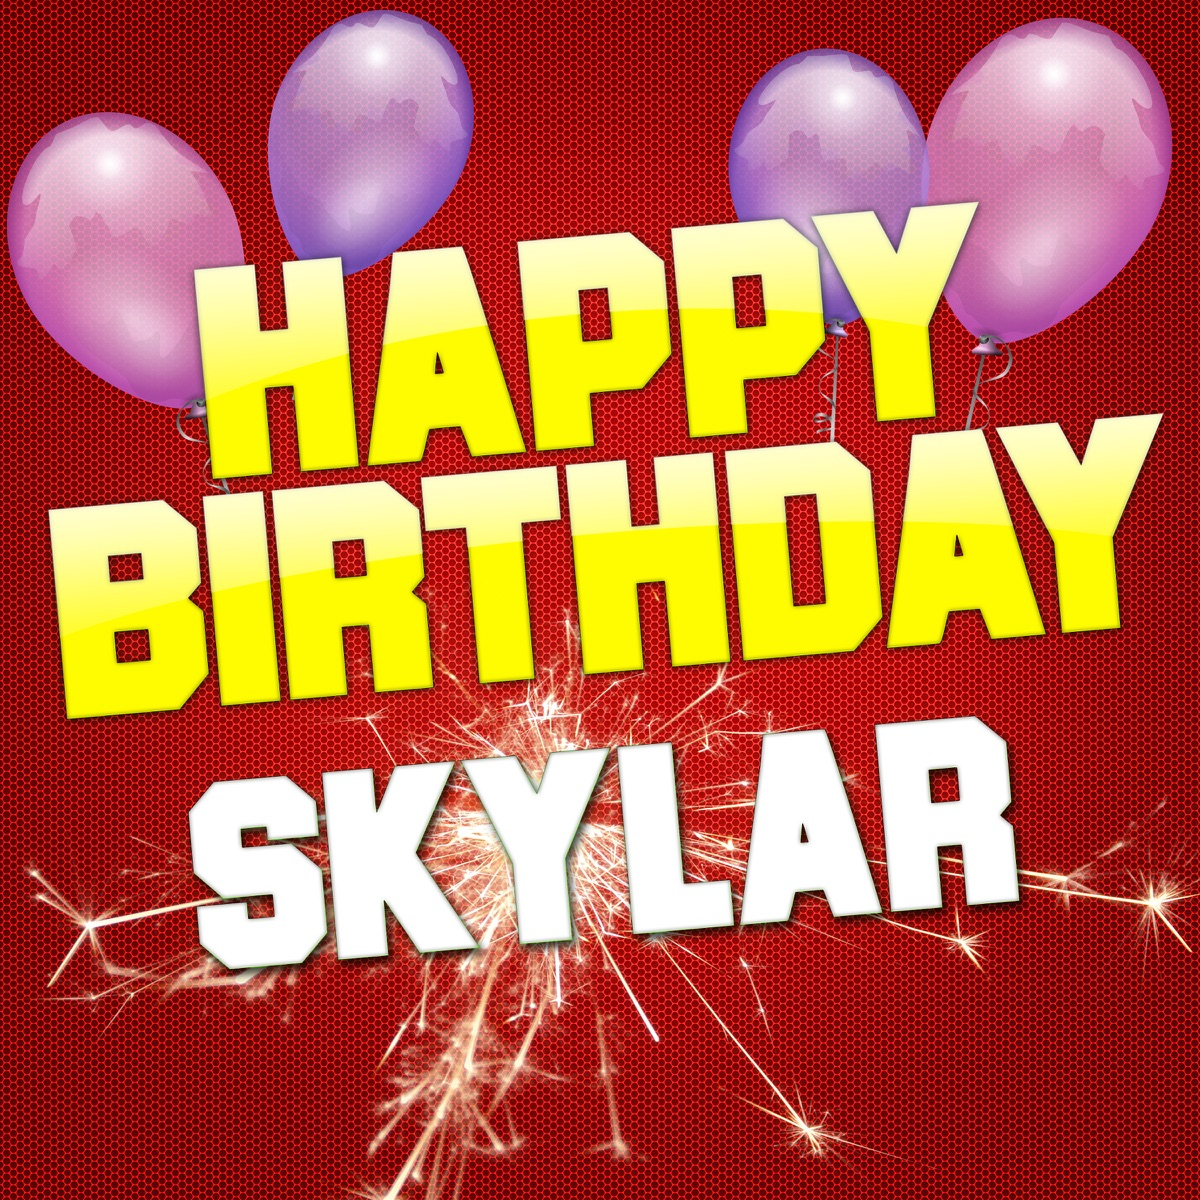 Happy Birthday Skylar EP Album Cover by White Cats Music